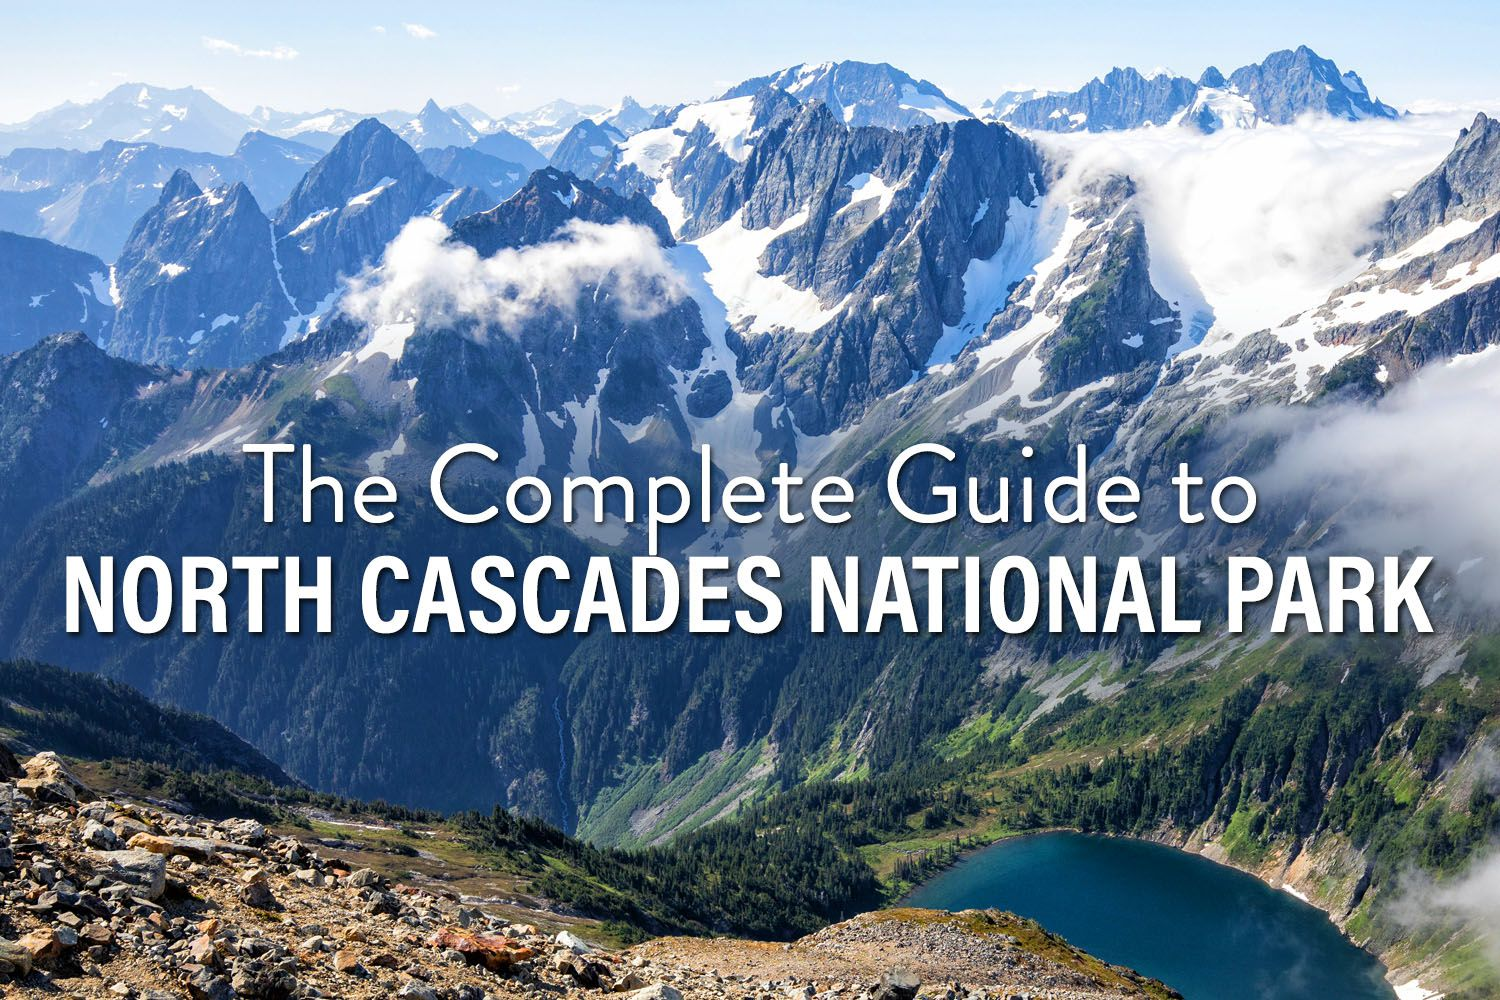 Guide to North Cascades